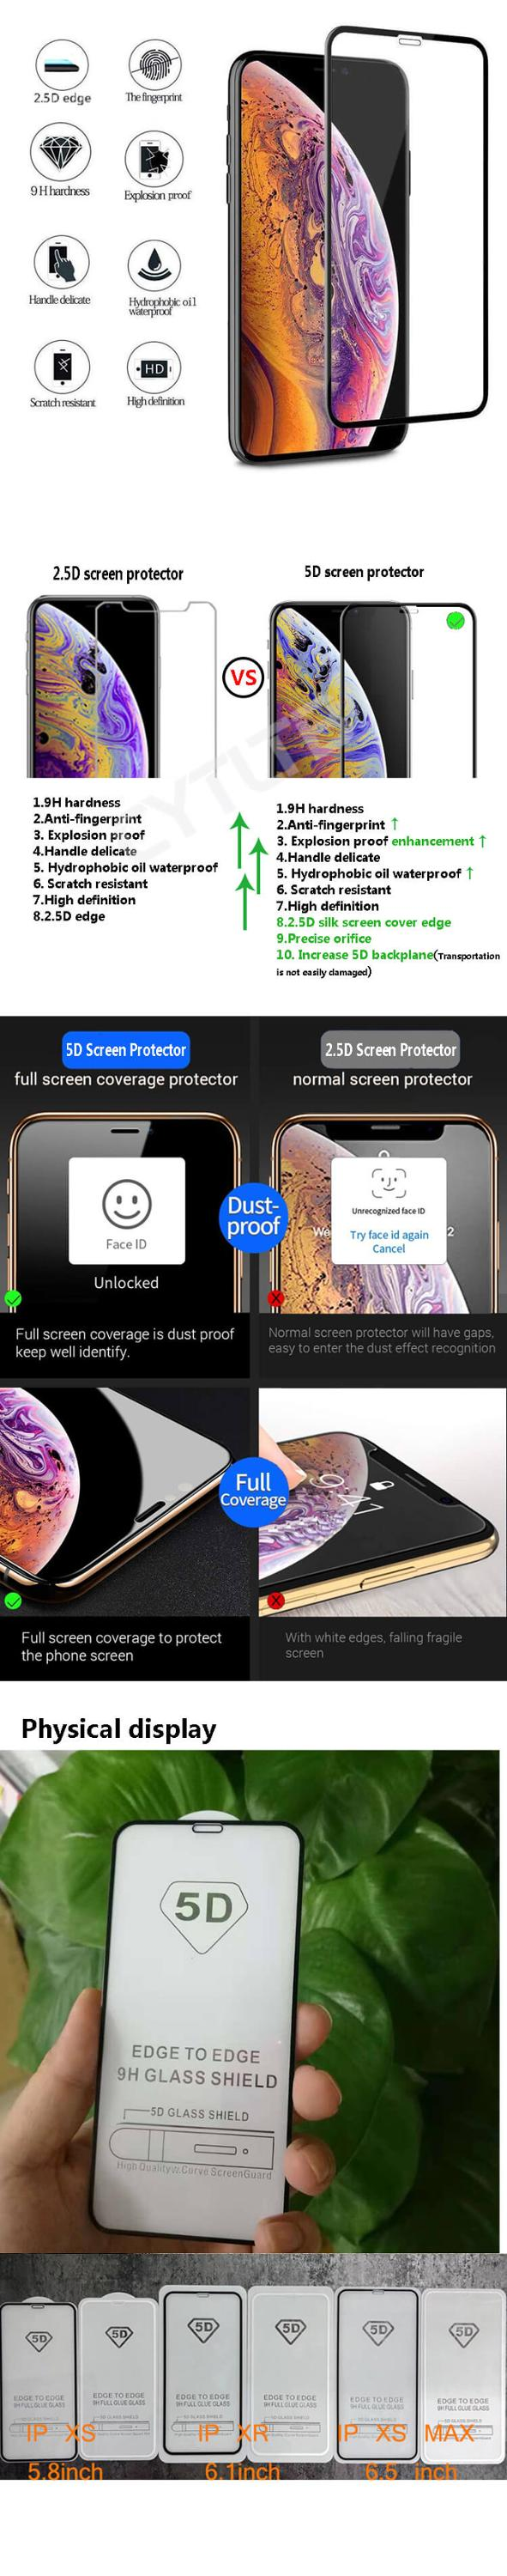 Silk Print Screen Full Caver 5D 9H Flexibility Mobile Phone Tempered Glass Screen Protector For Iphone XS Max Xs Xr X